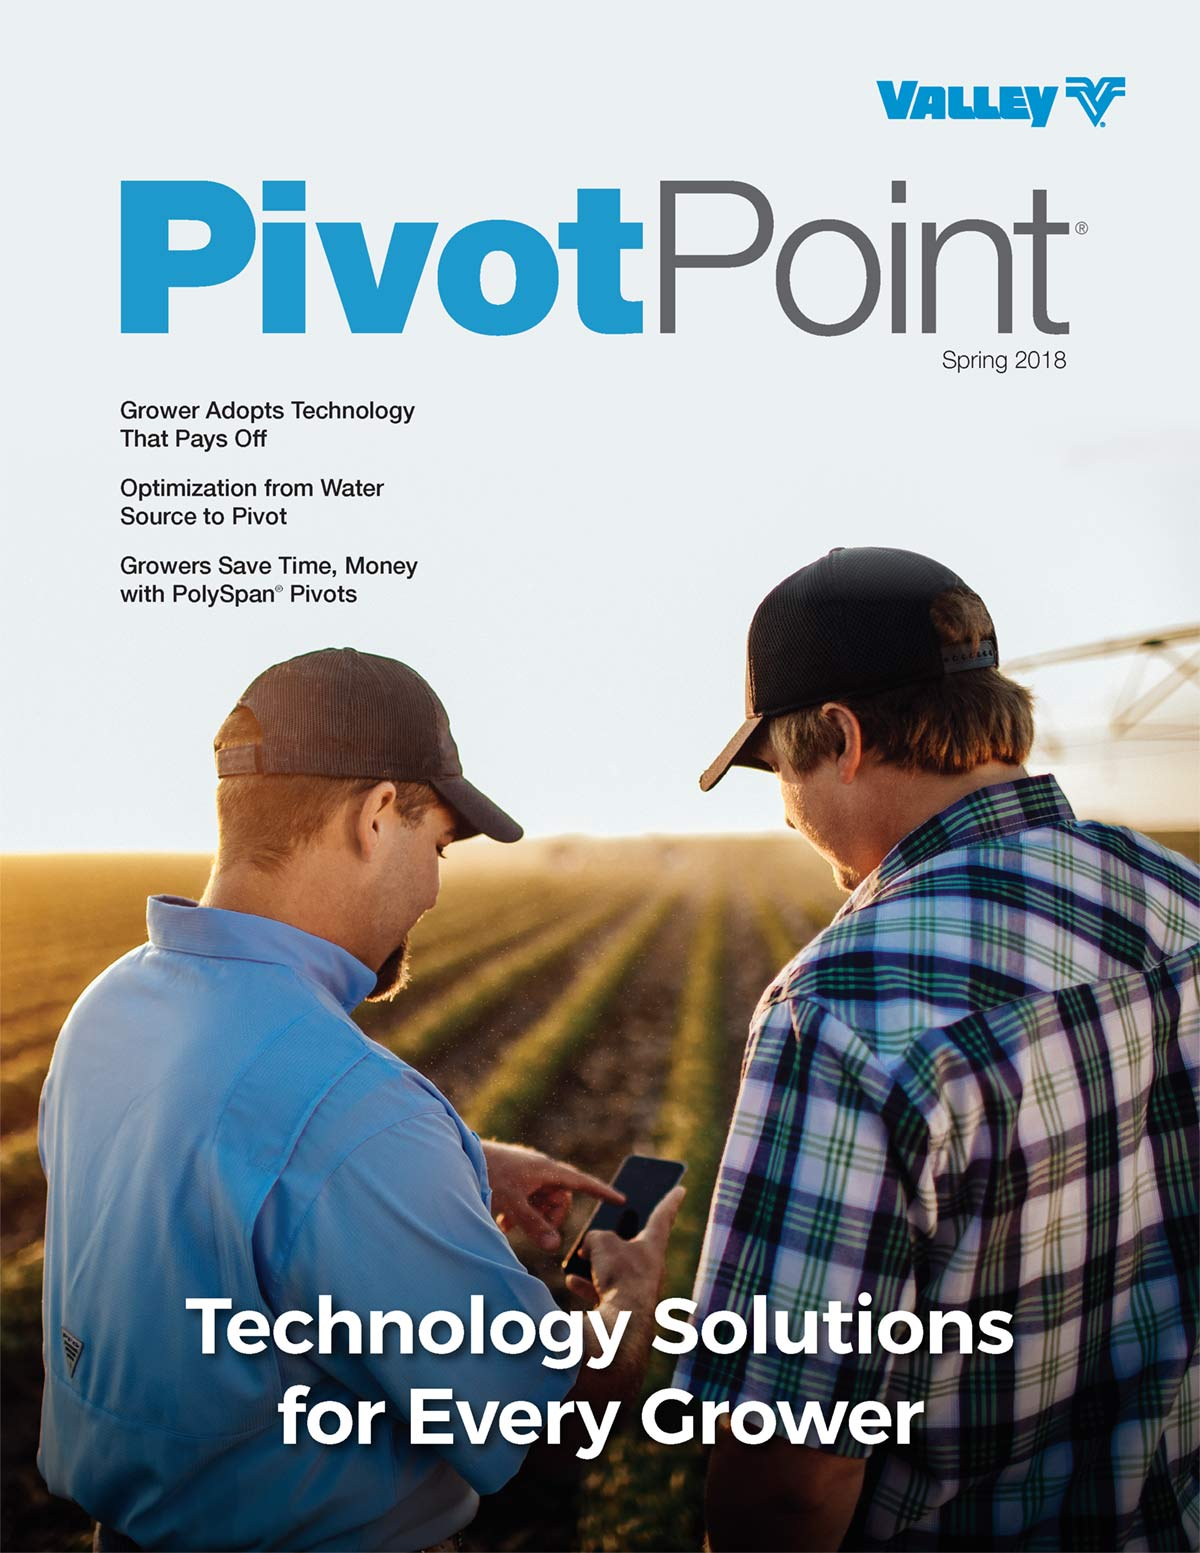 Valley PivotPoint Magazine - Spring 2016